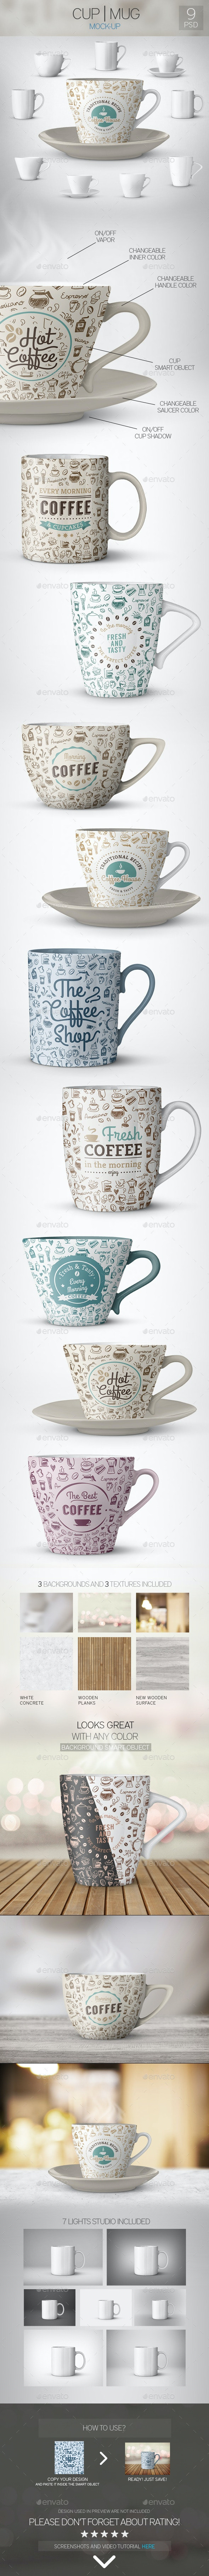 Cup | Mug Mock-Up - Food and Drink Packaging